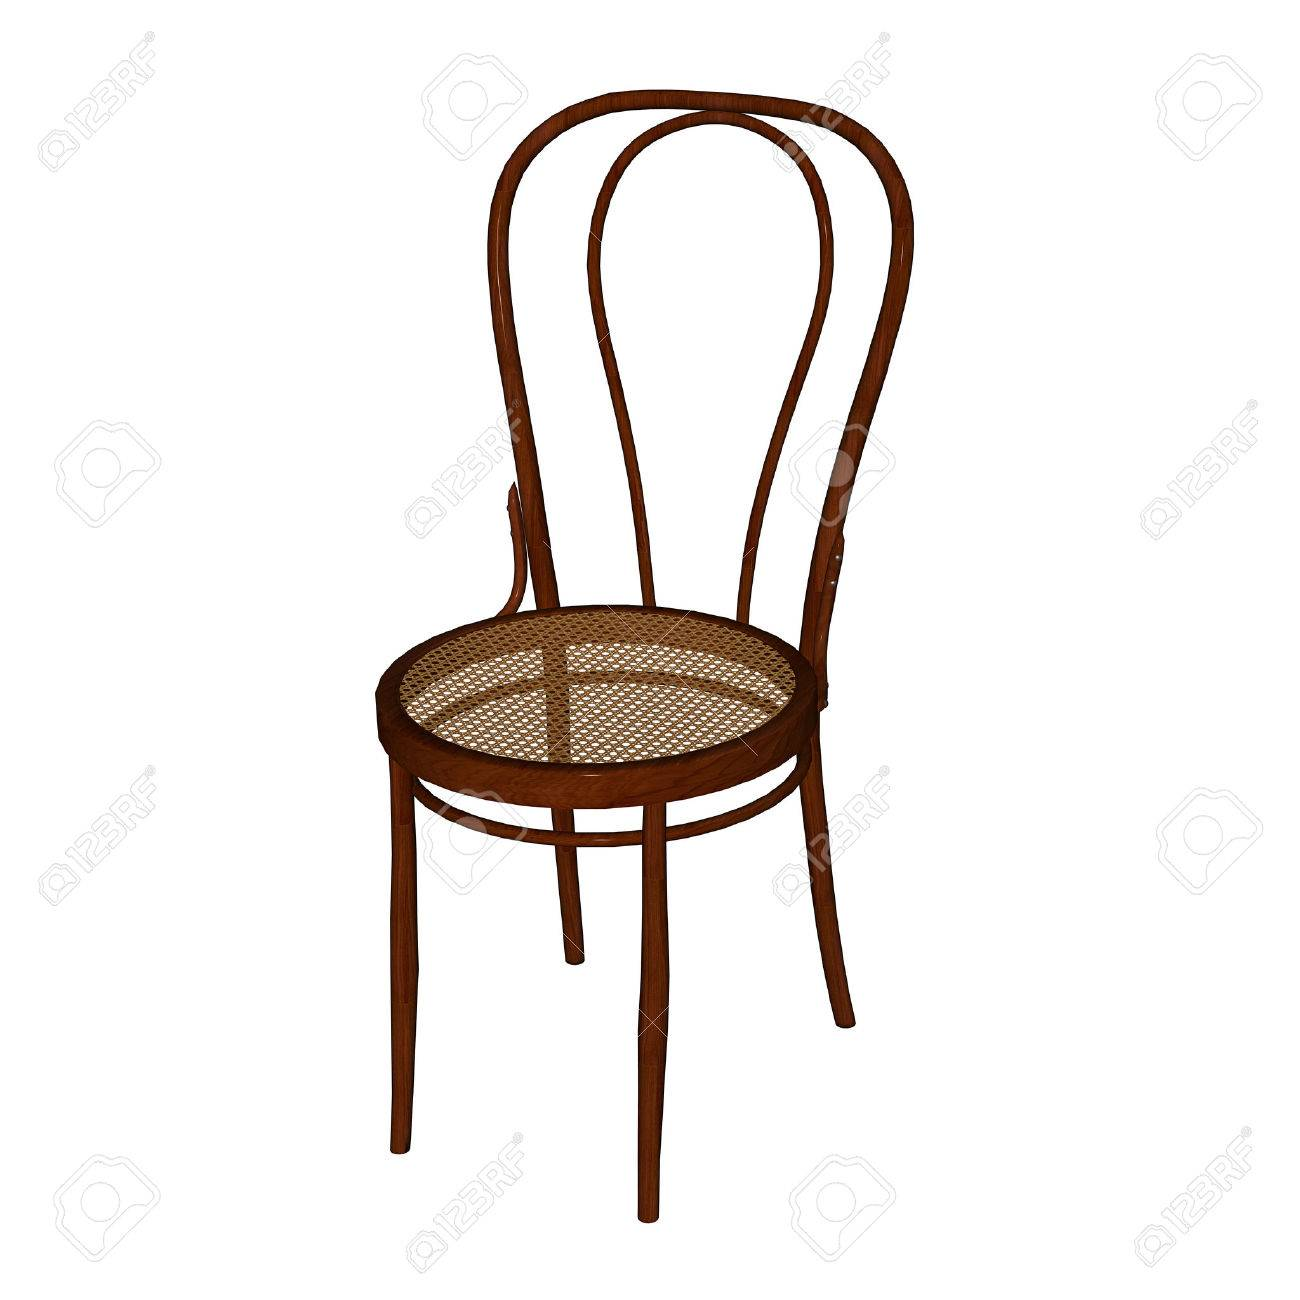 Art Deco Thonet Chair With Wien Caned Seat 3d Rendering